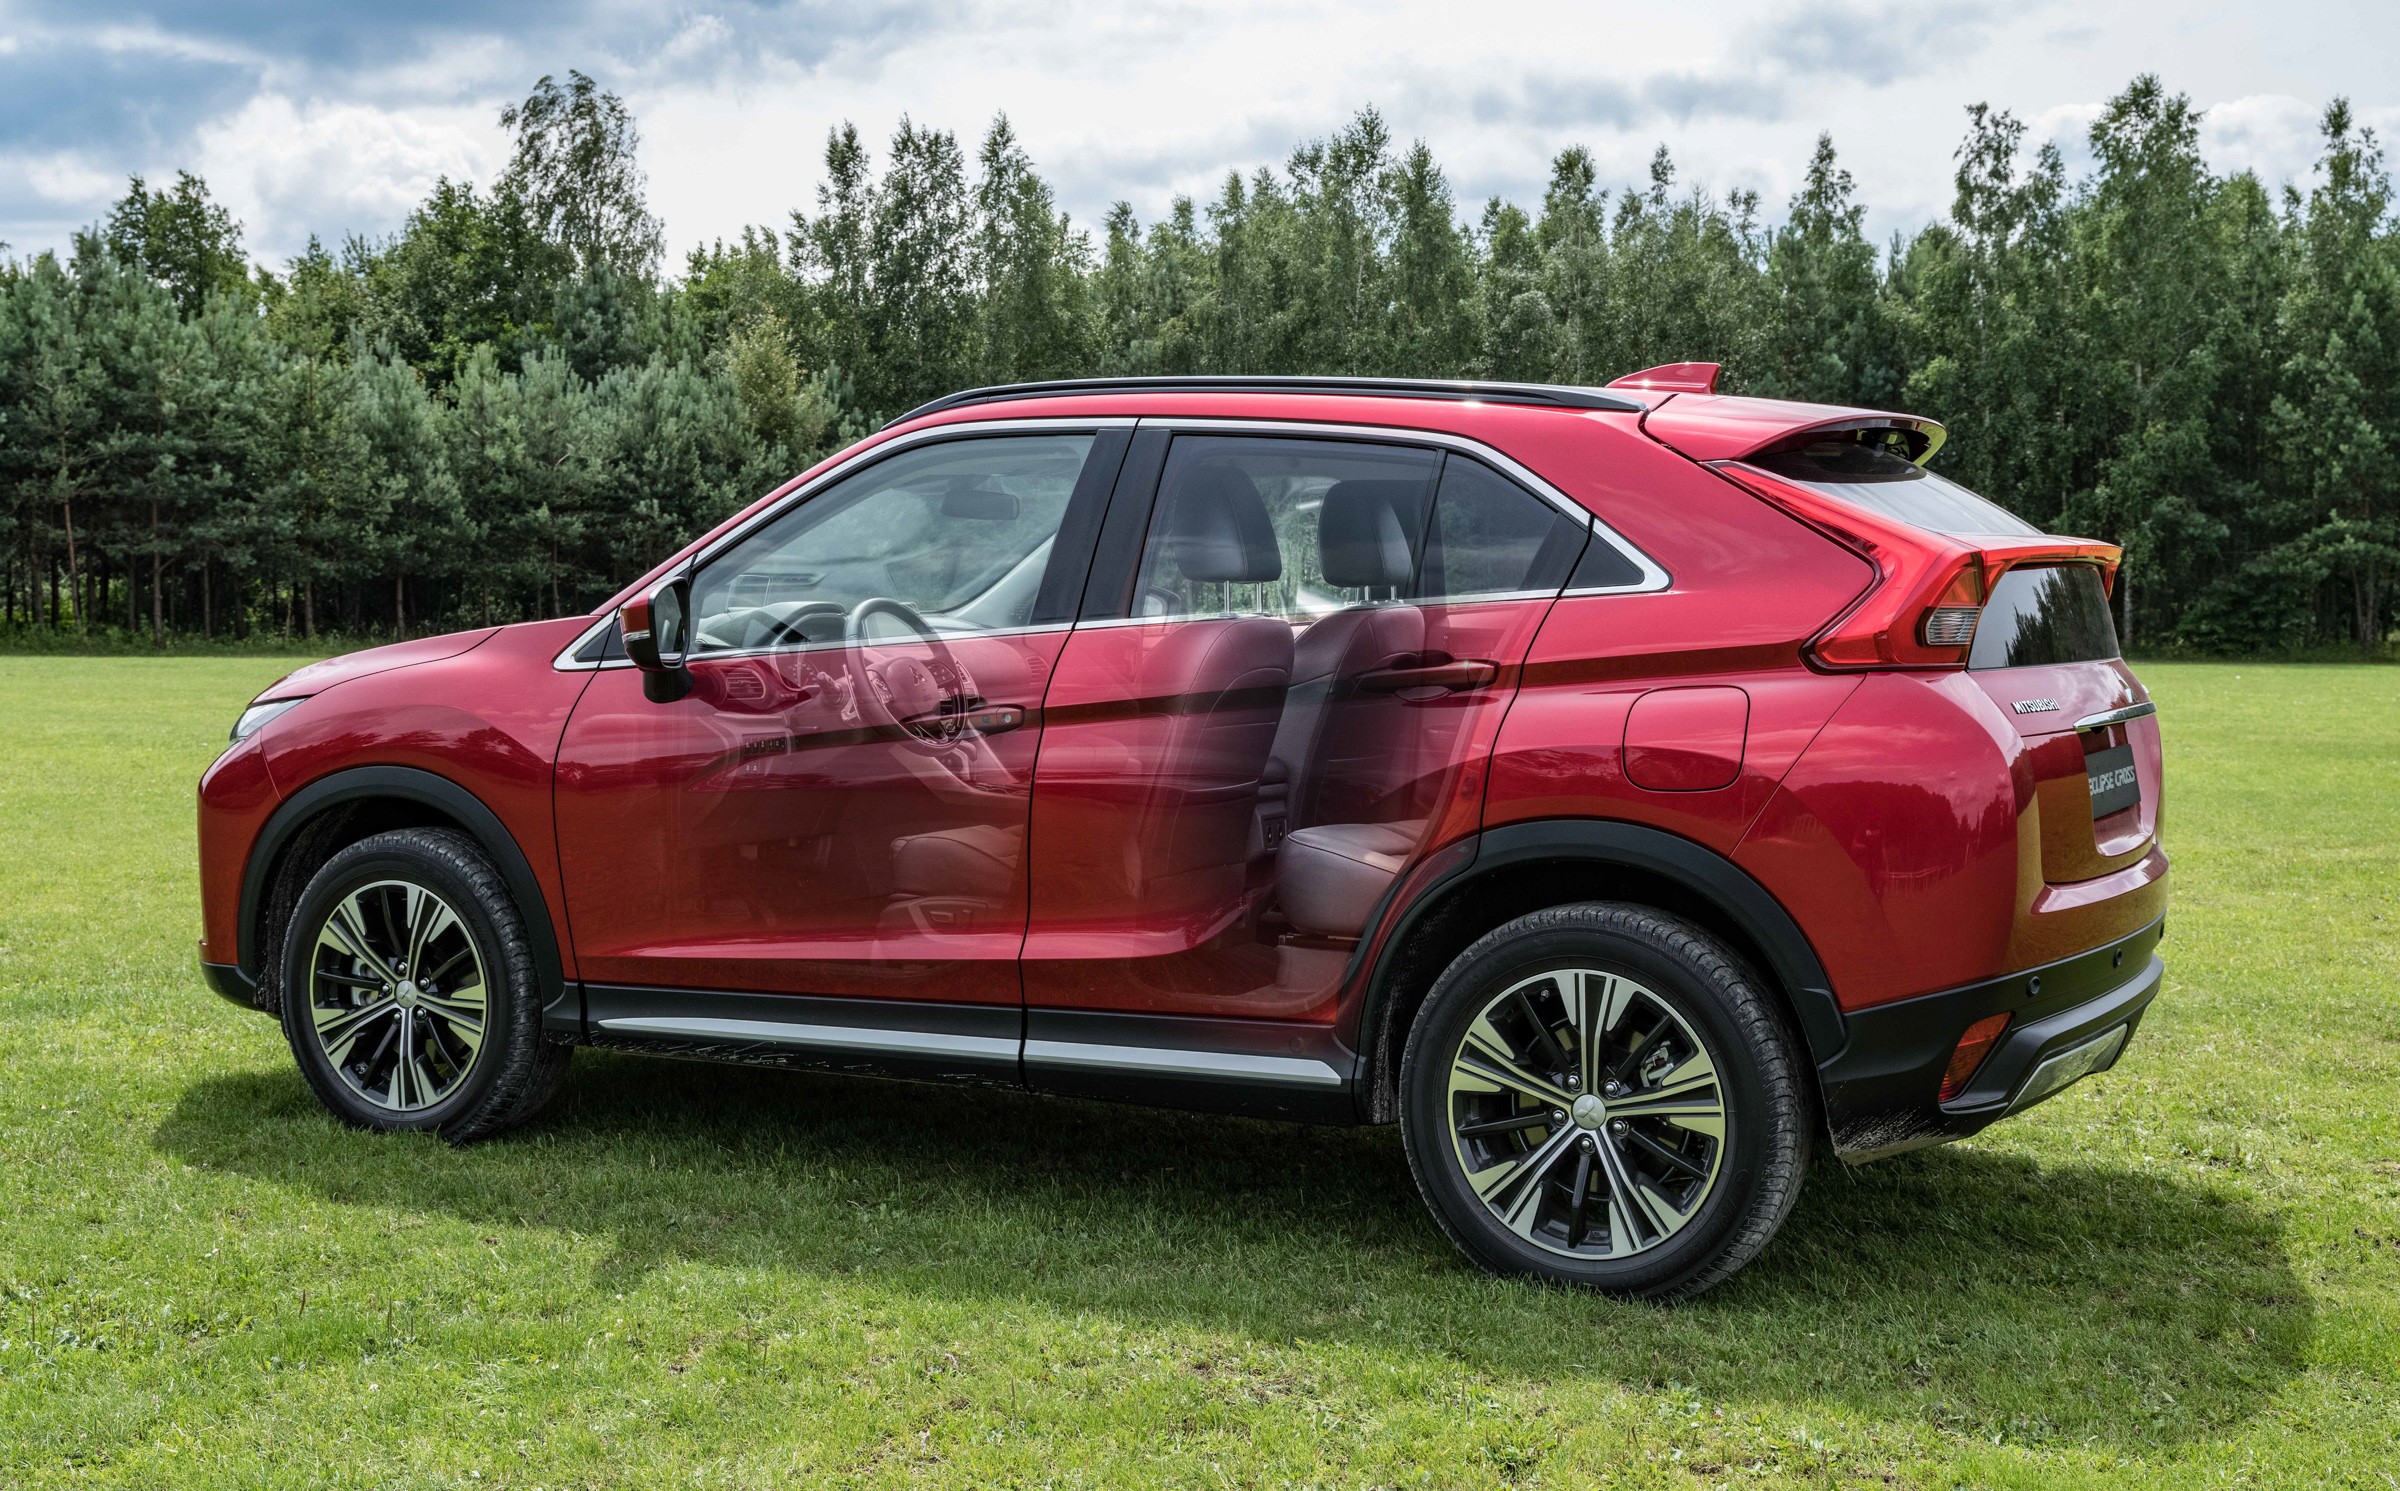 Mitsubishi_Eclipse_Cross_gra_w_polo  27jpg